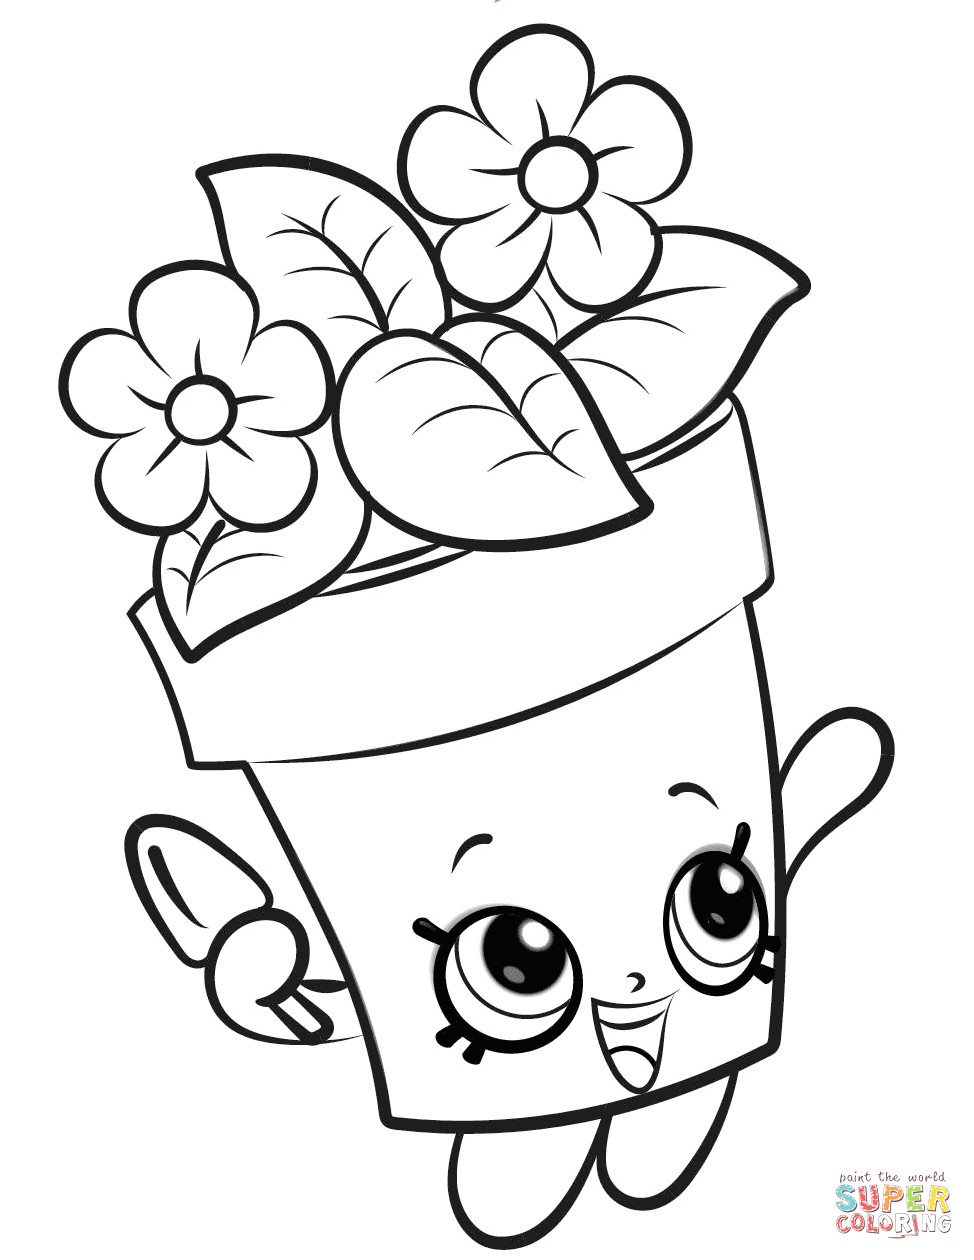 Shopkins Drawing Pages | Free download on ClipArtMag